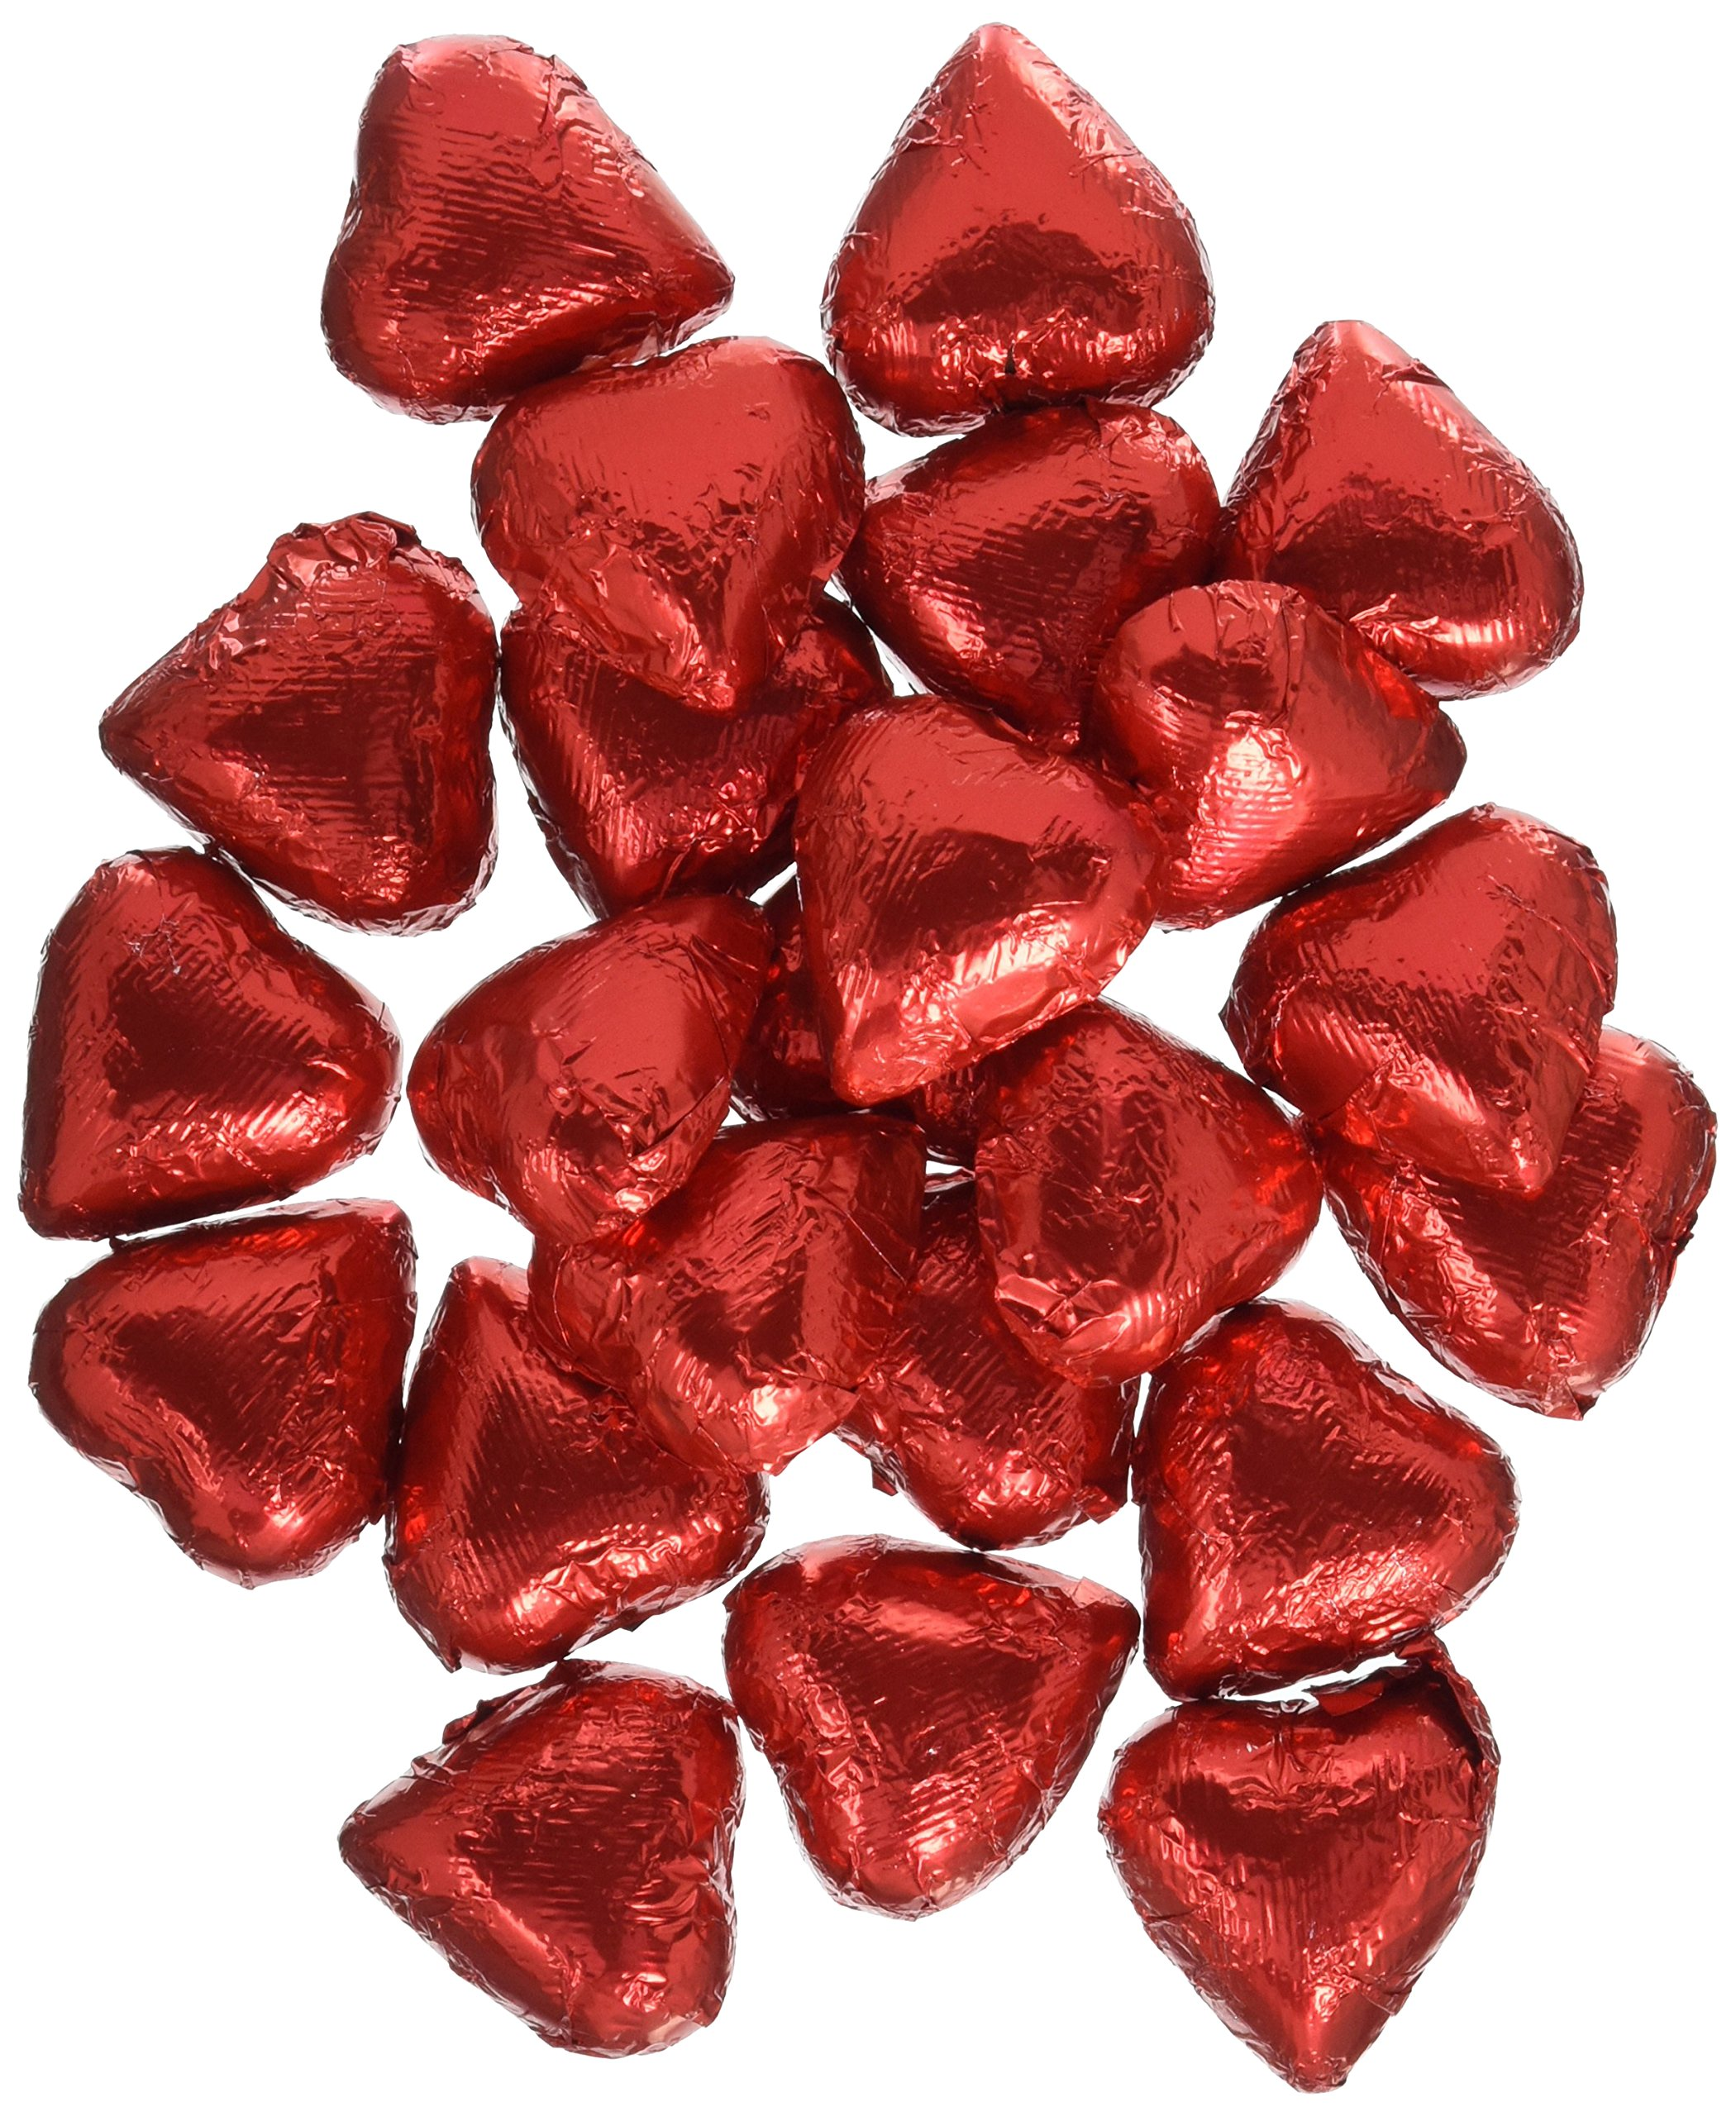 Sweetworks Foil Wrapped Hearts, Red Niagara, 10 Pound by SweetWorks